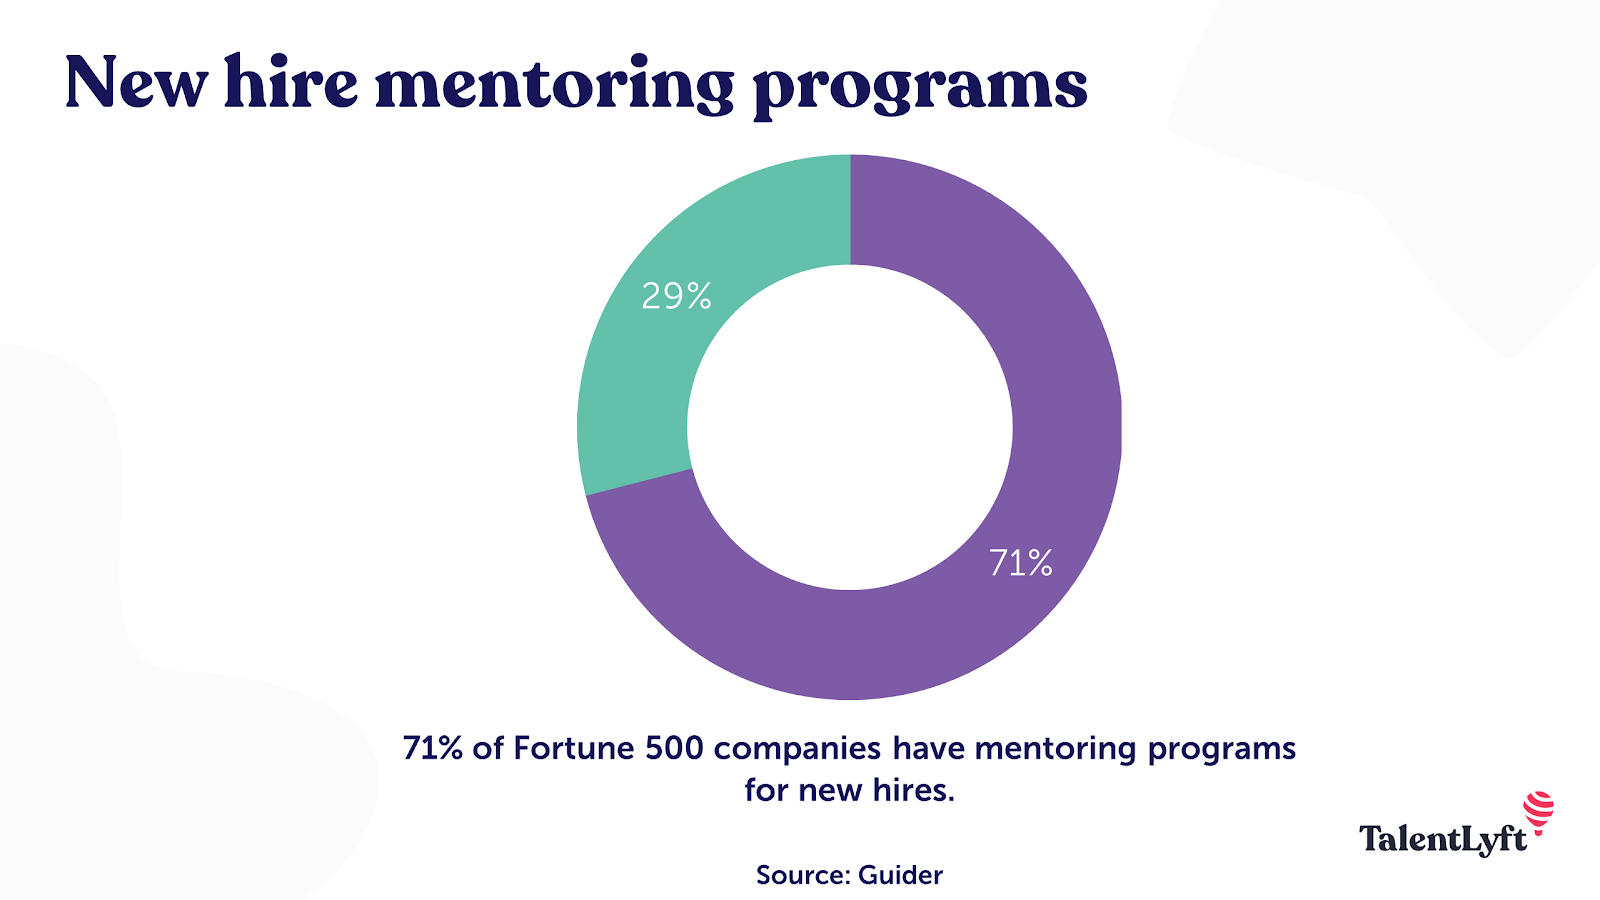 New hire mentoring programs